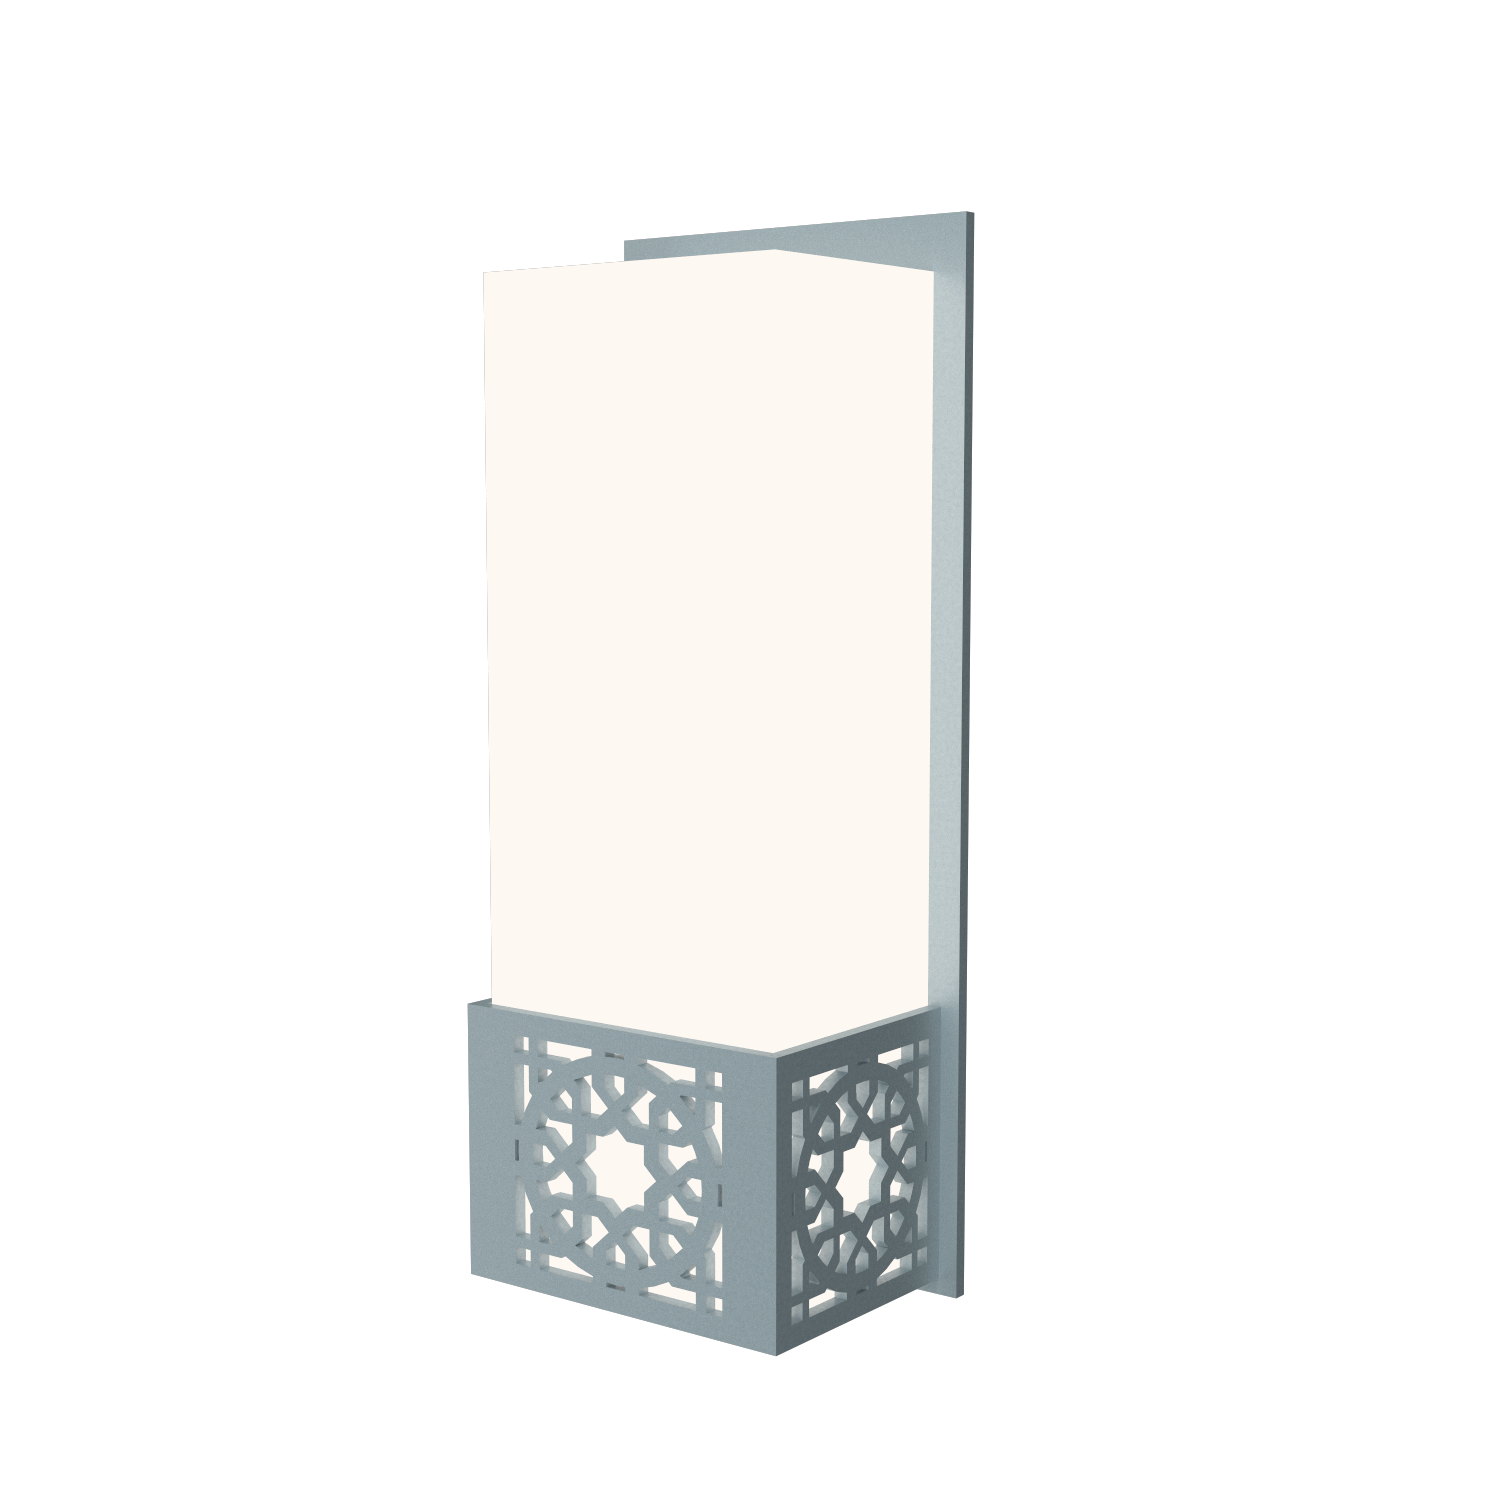 Wall Lamp Accord Patterns 4052 - Patterns Line Accord Lighting | Satin Blue